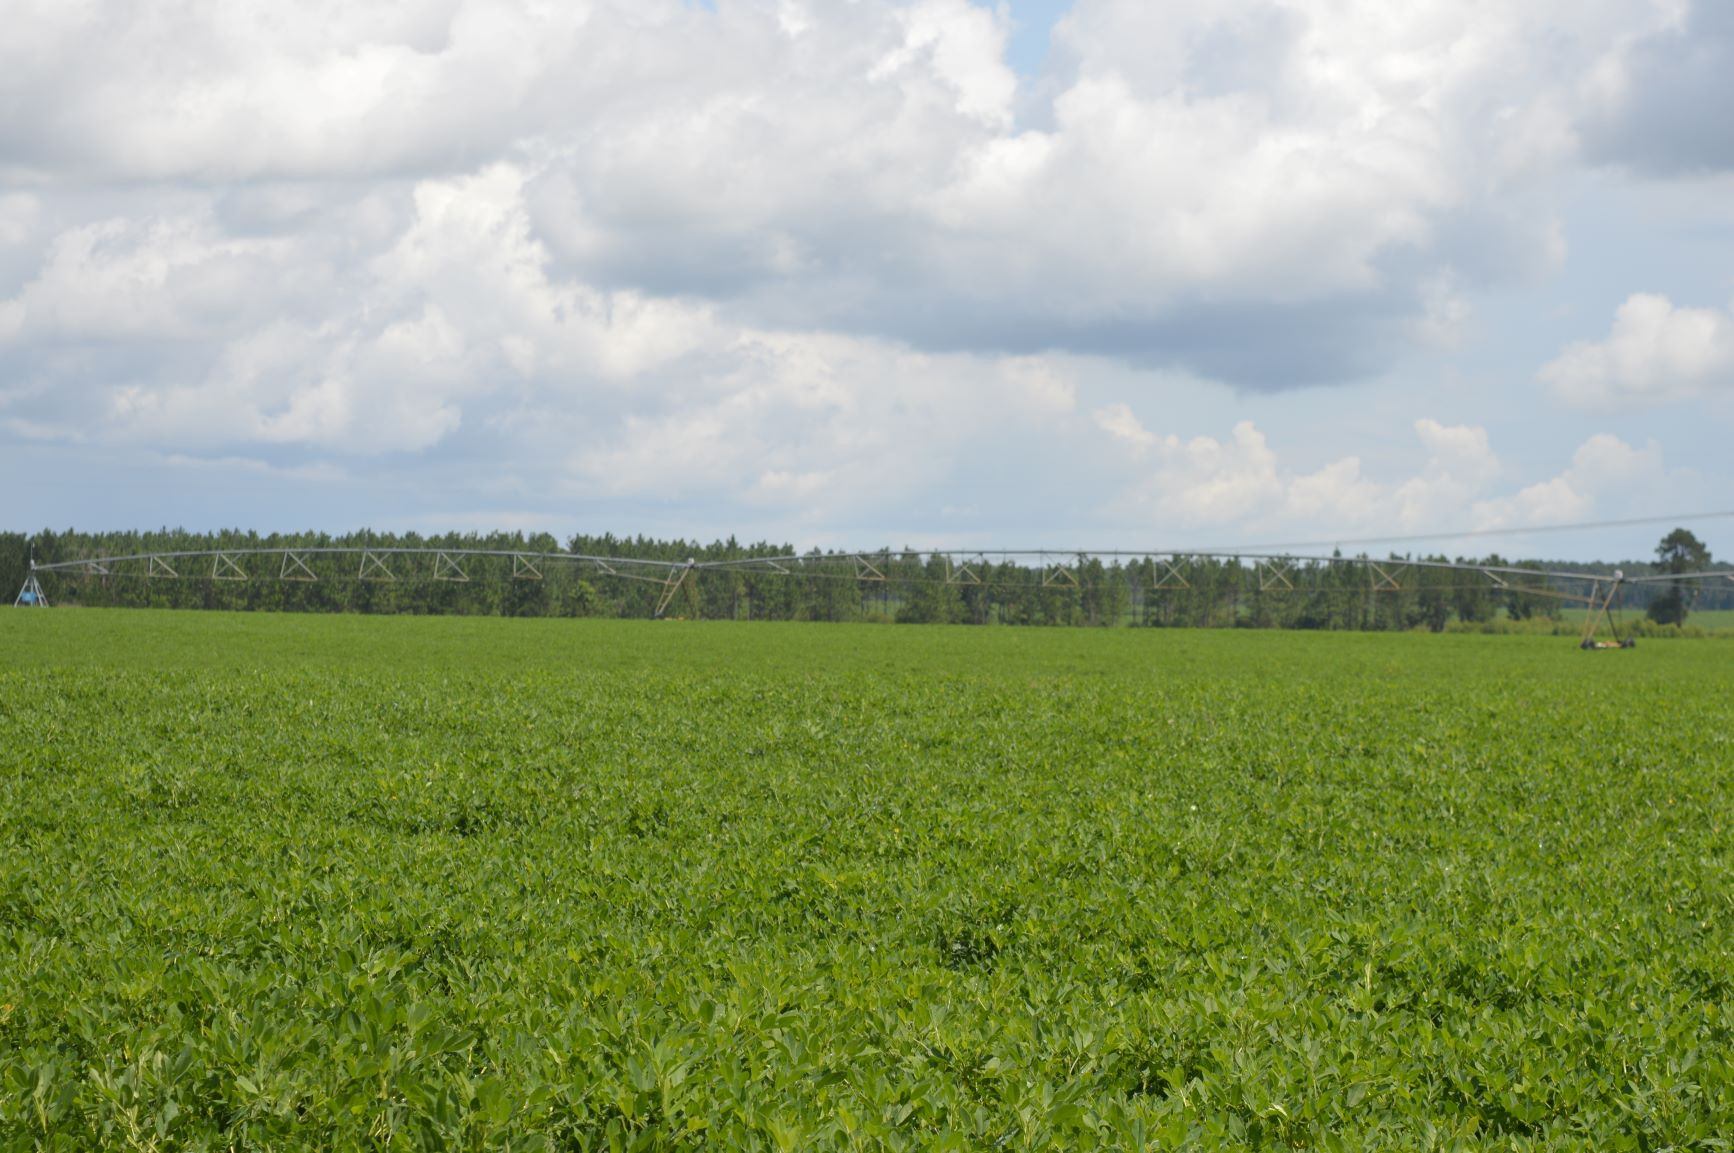 Weed Management Tours for Peanuts and Cotton